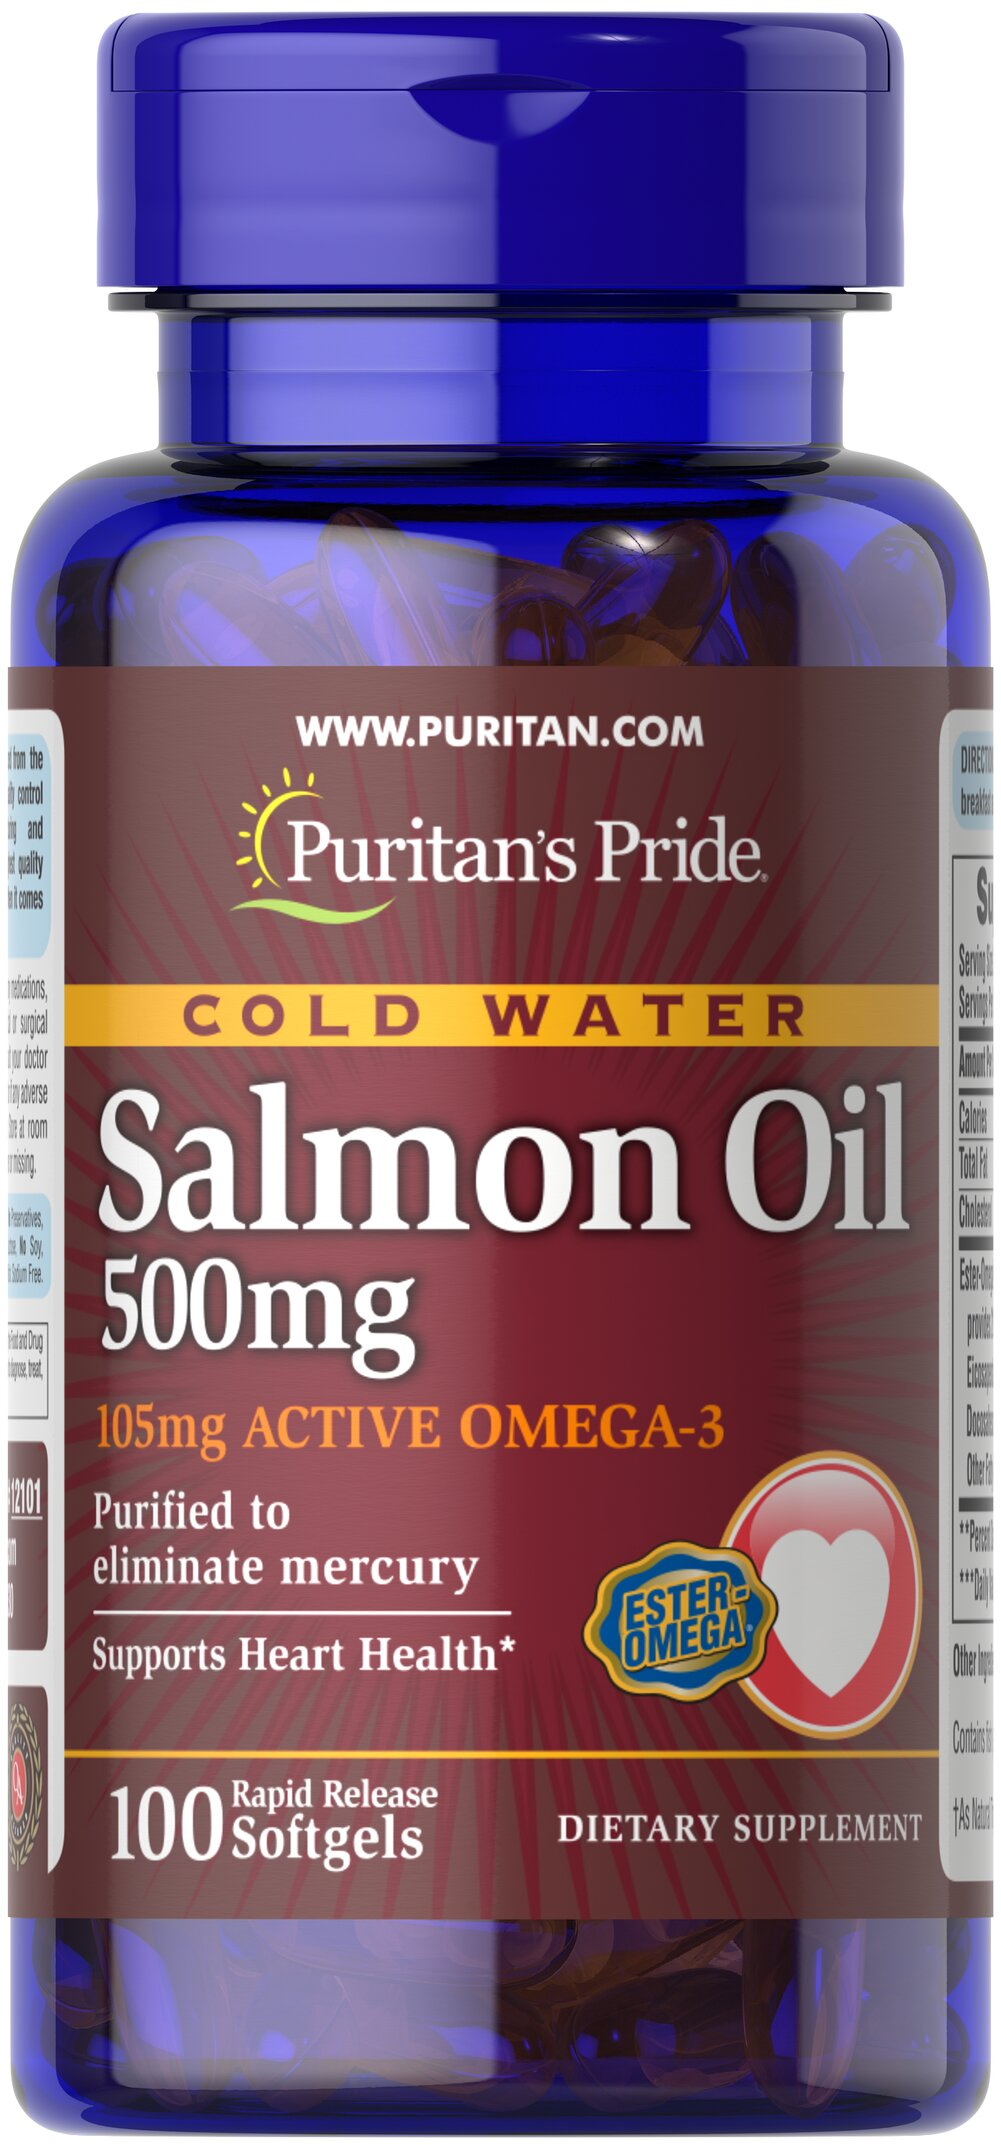 Omega-3 Salmon Oil 500 mg (105 mg Active Omega-3)  100 Softgels 500 mg $11.99